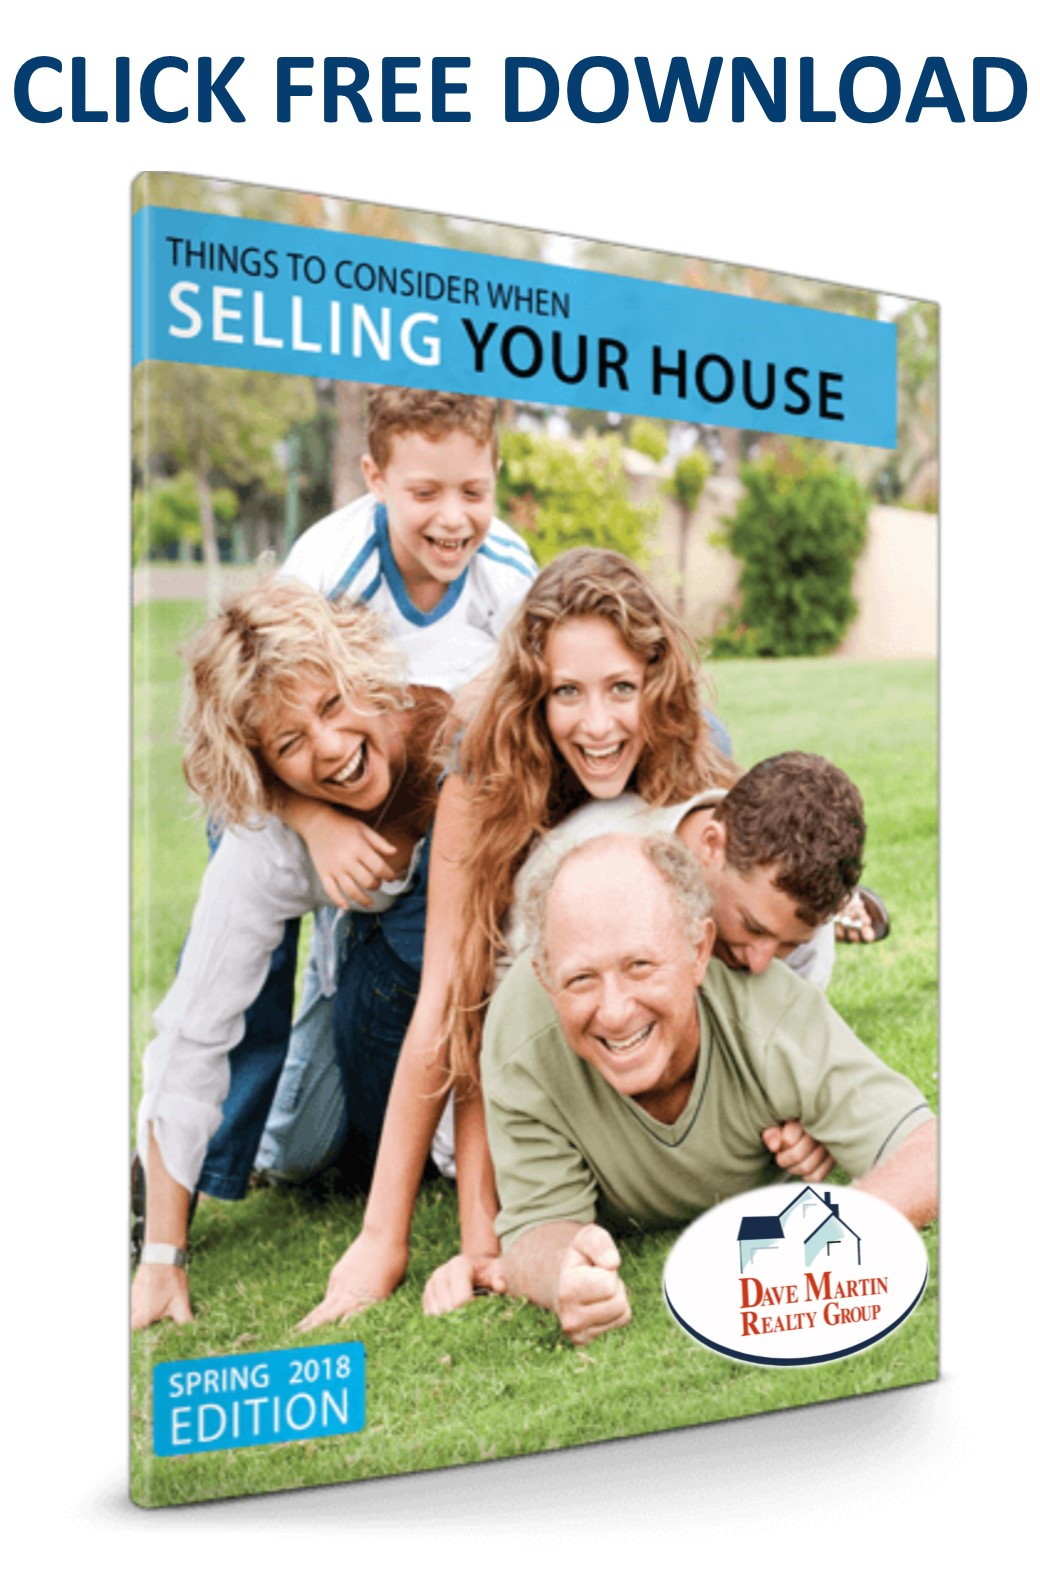 Selling a house in Northern Va home selling guide free download real estate listing specialist dave martin guarantee multiple competing offers on your house